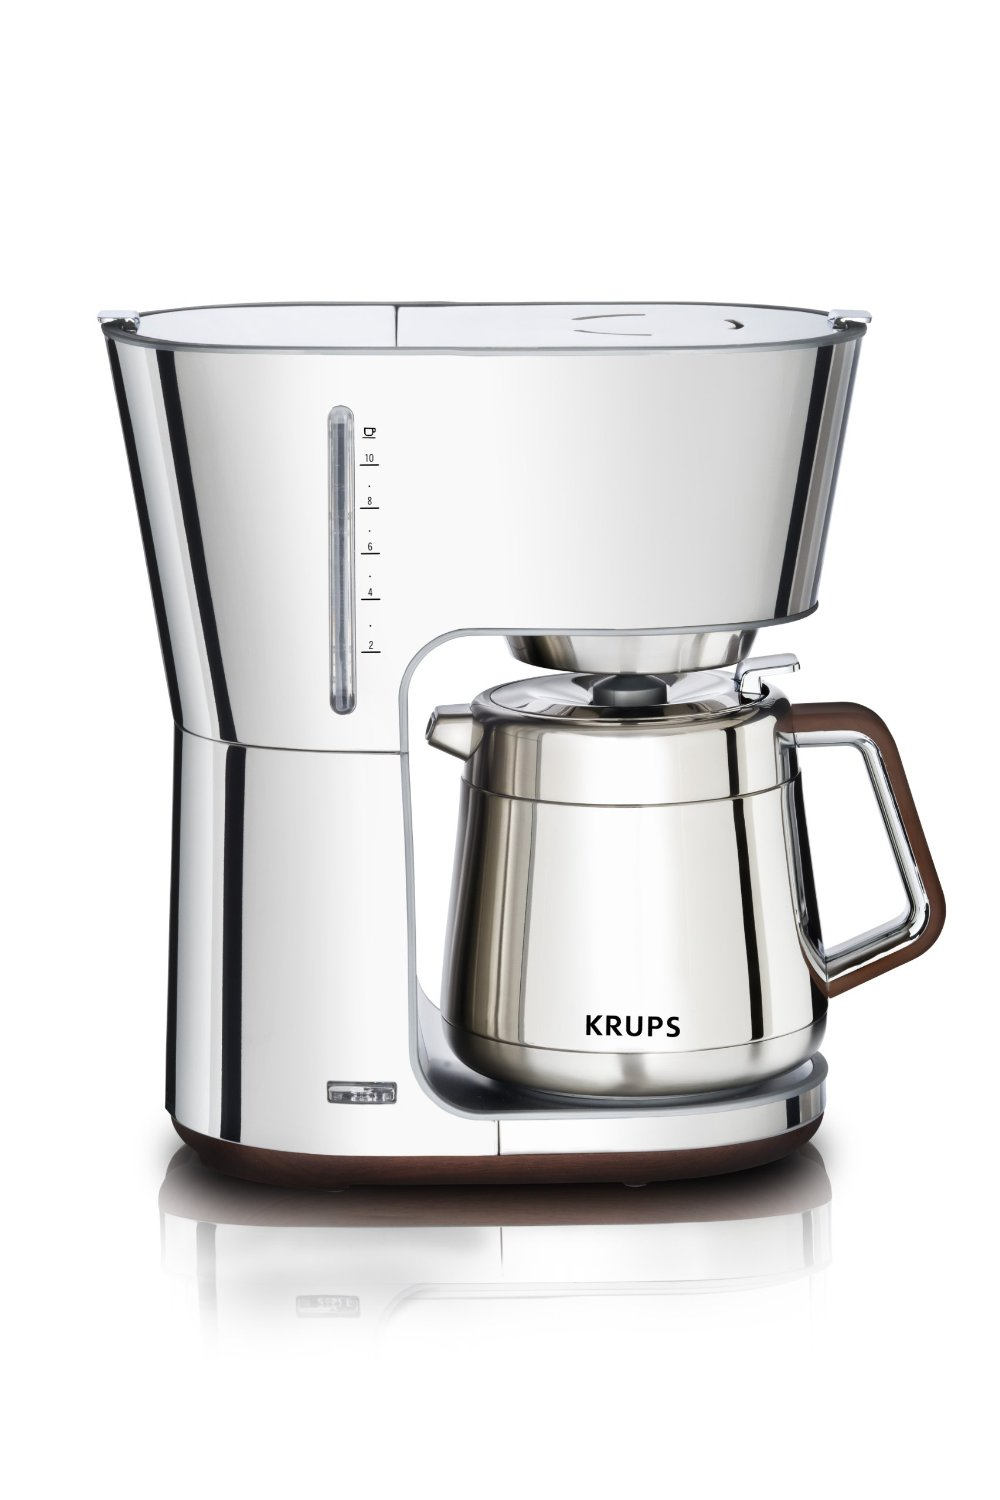 KRUPS KT600 Silver Art Collection Thermal Carafe Coffee Maker with Chrome Stainless Steel Housing 10 Cup Silver Best  Cup Coffee Maker With Thermal Carafe